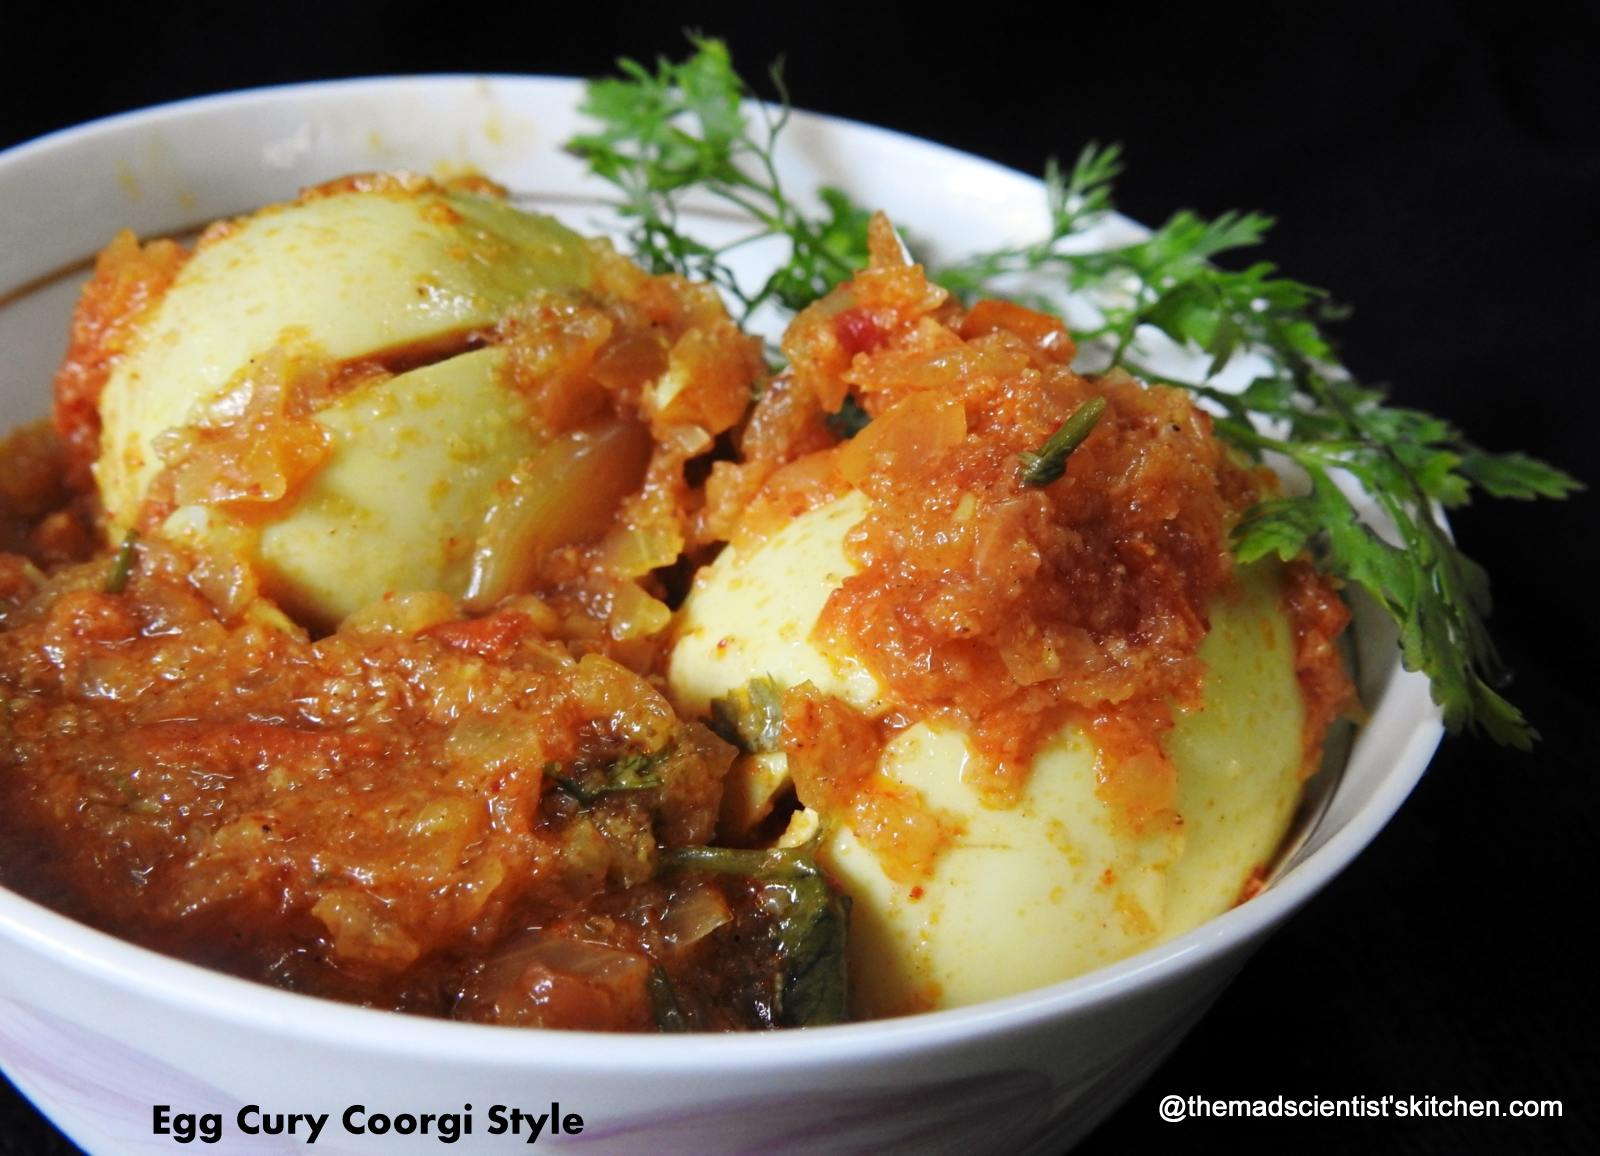 Egg Curry in Coorgi Style